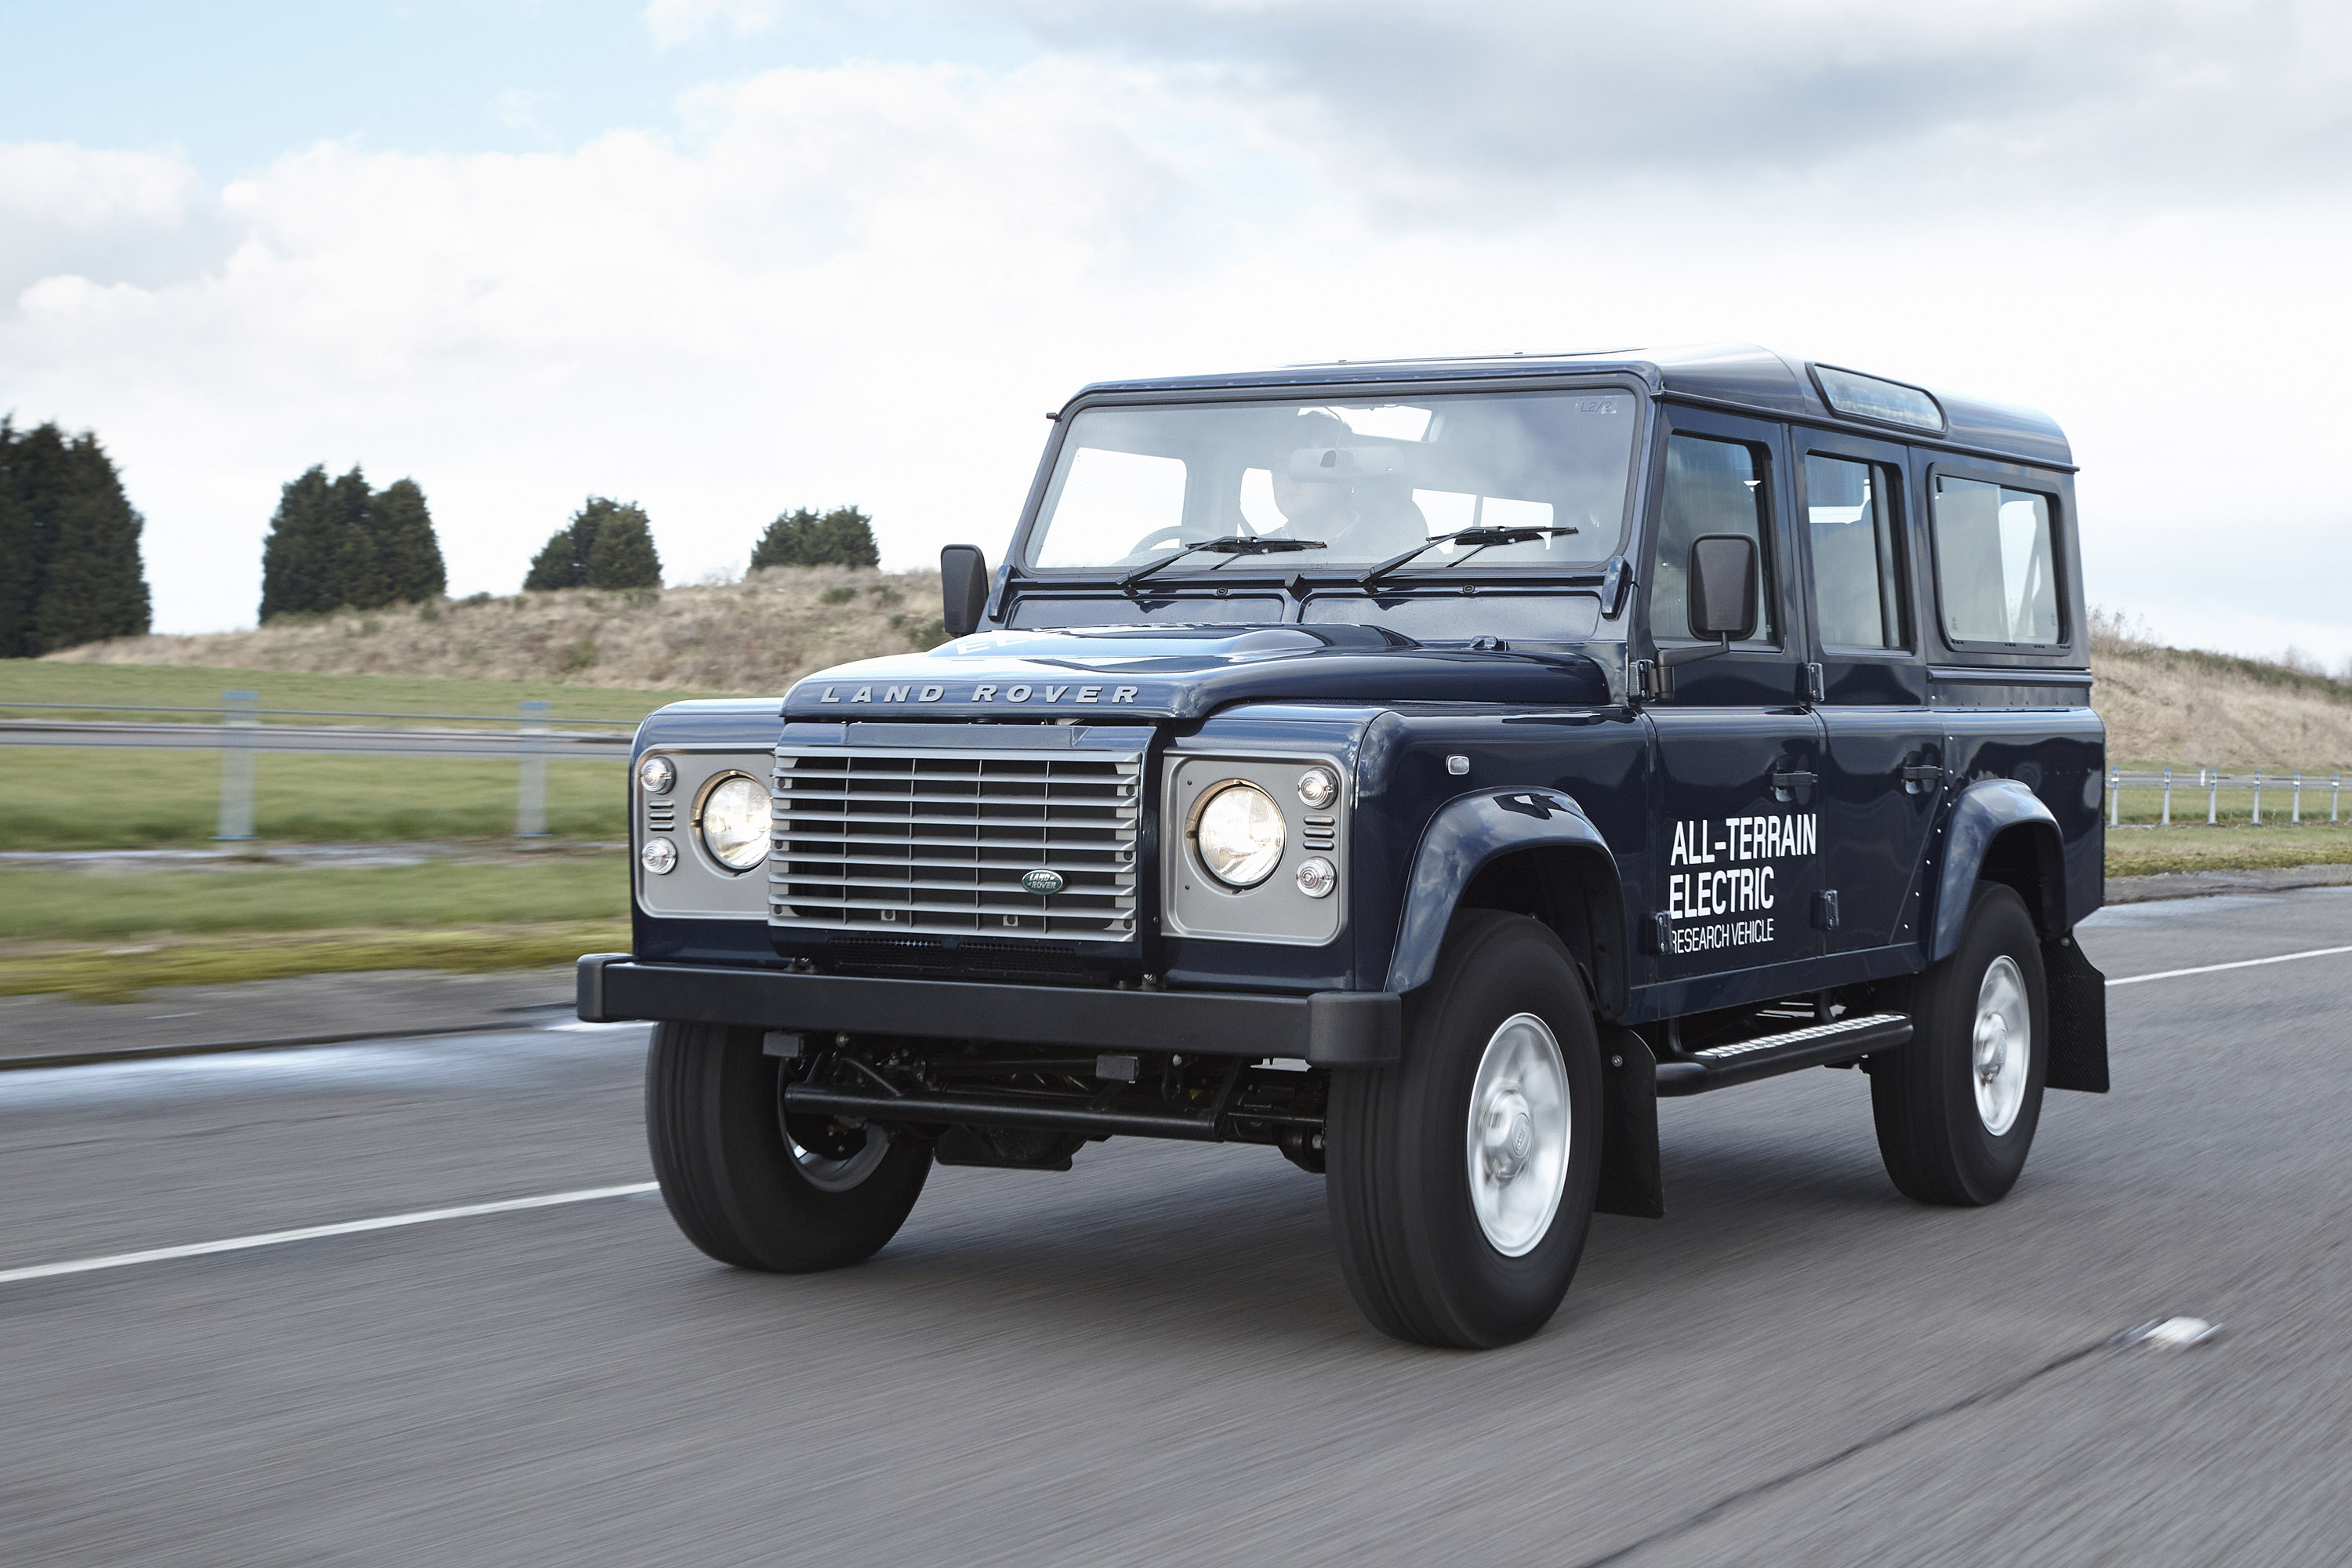 https://www.carsinvasion.com/gallery/2013-land-rover-defender-electric-concept/2013-land-rover-defender-electric-concept-01.jpg